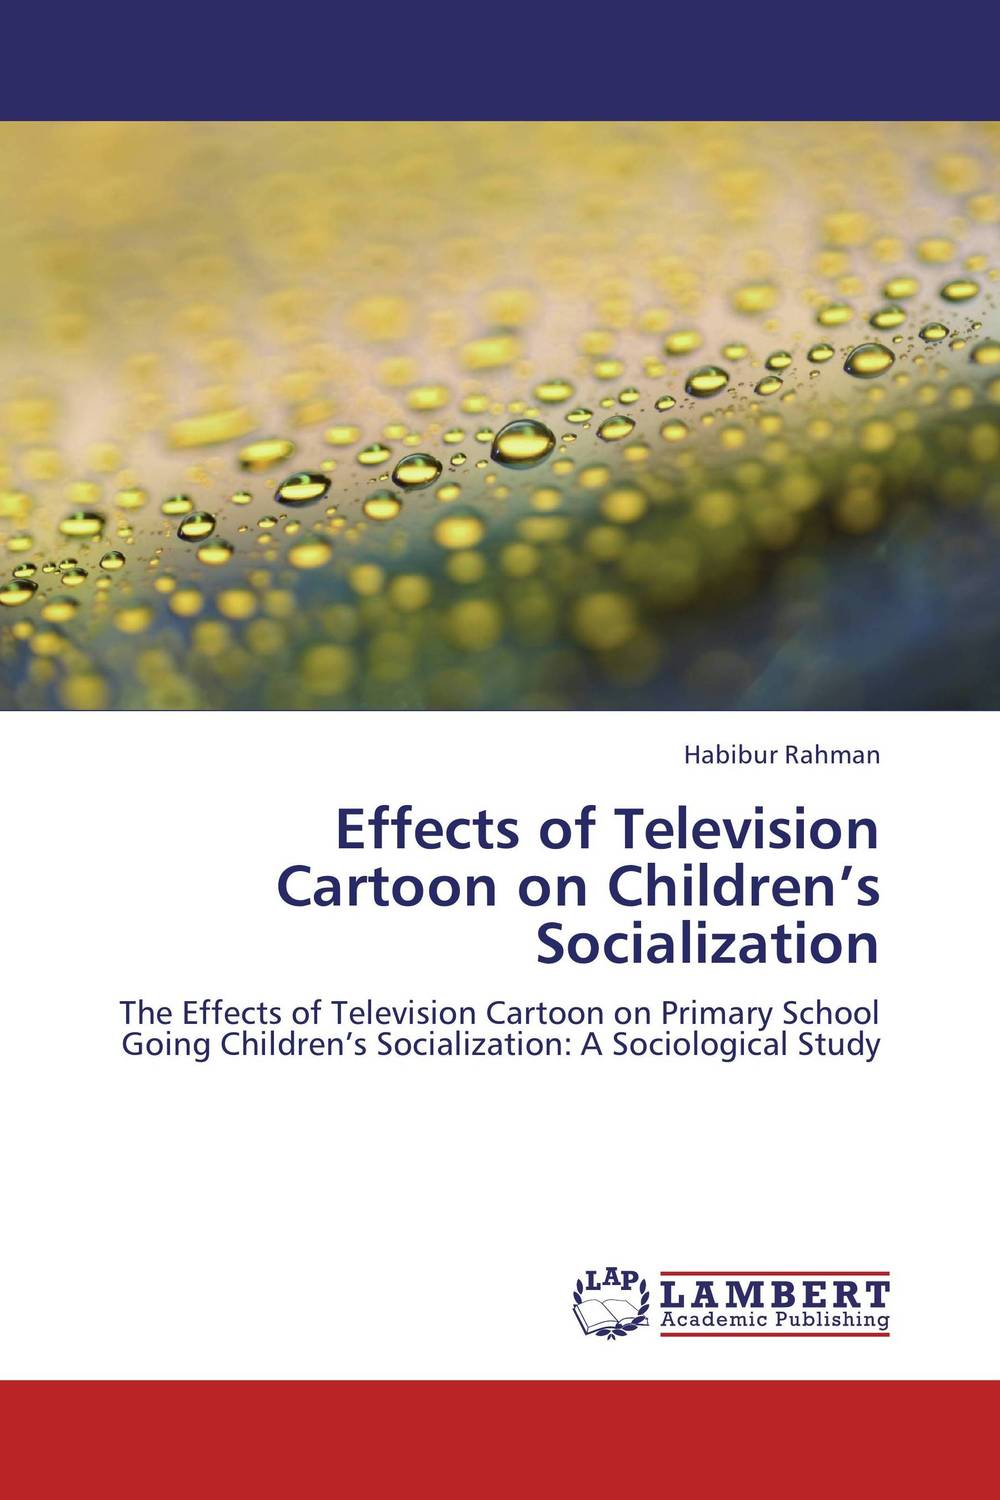 Effects of Television Cartoon on Children's Socialization